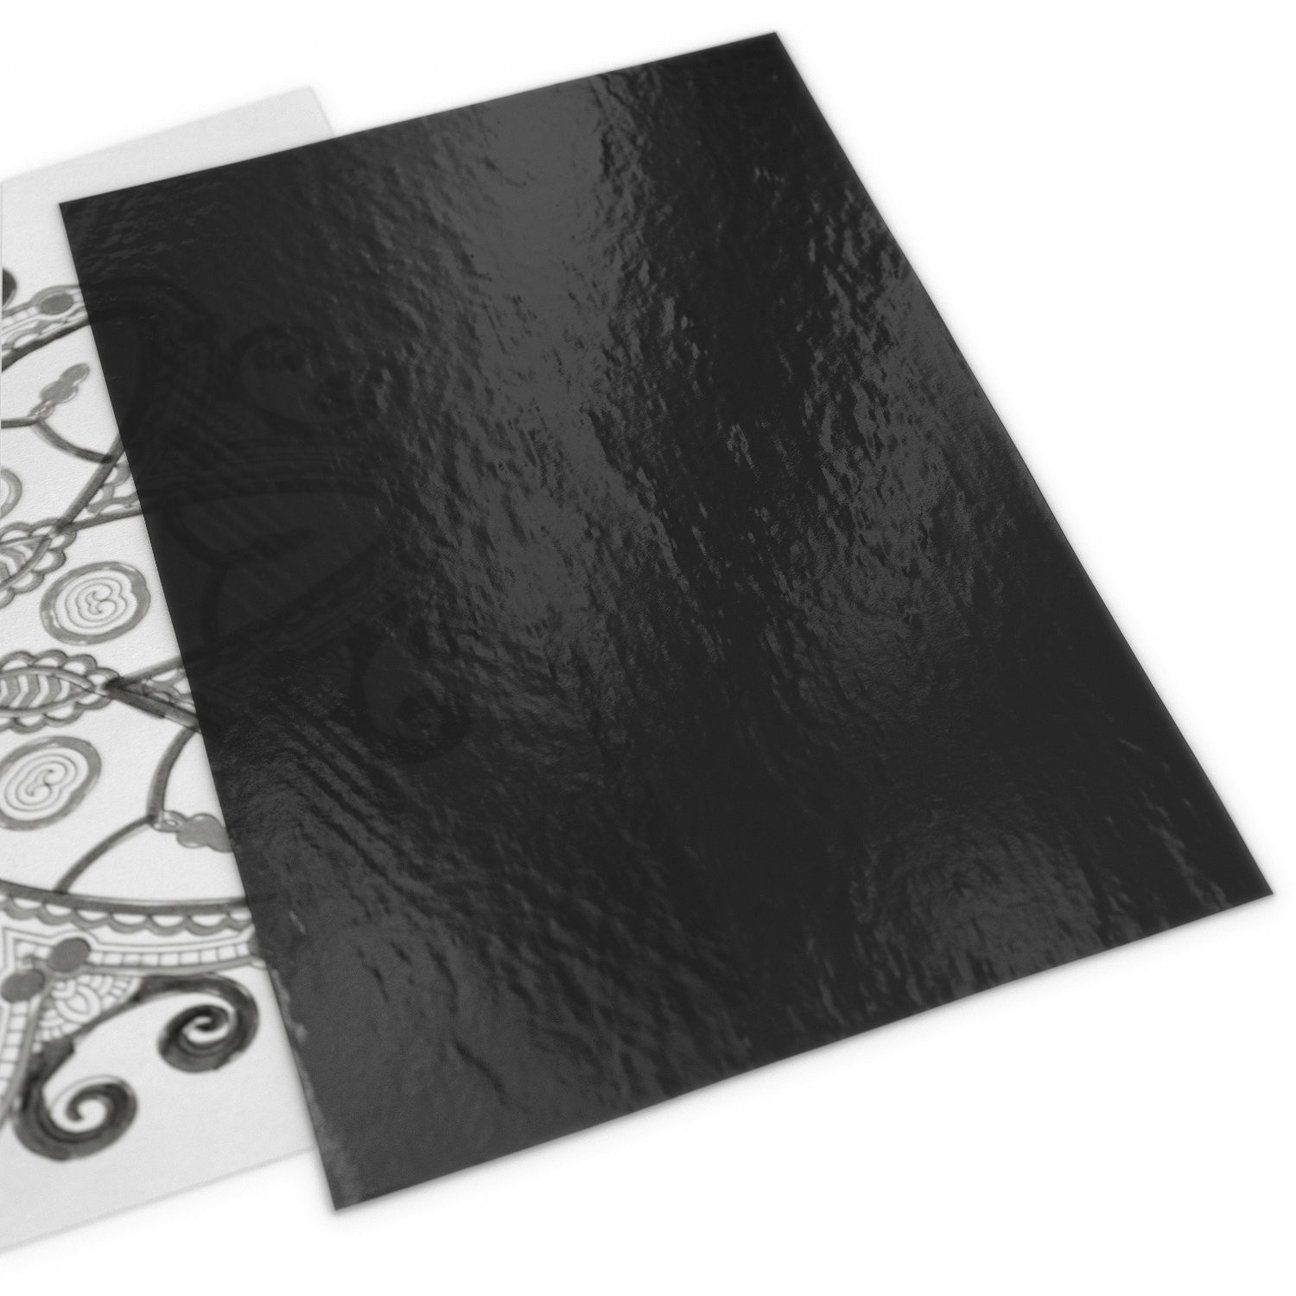 Graphite transfer paper 9 x 13 in 60 gray sheets